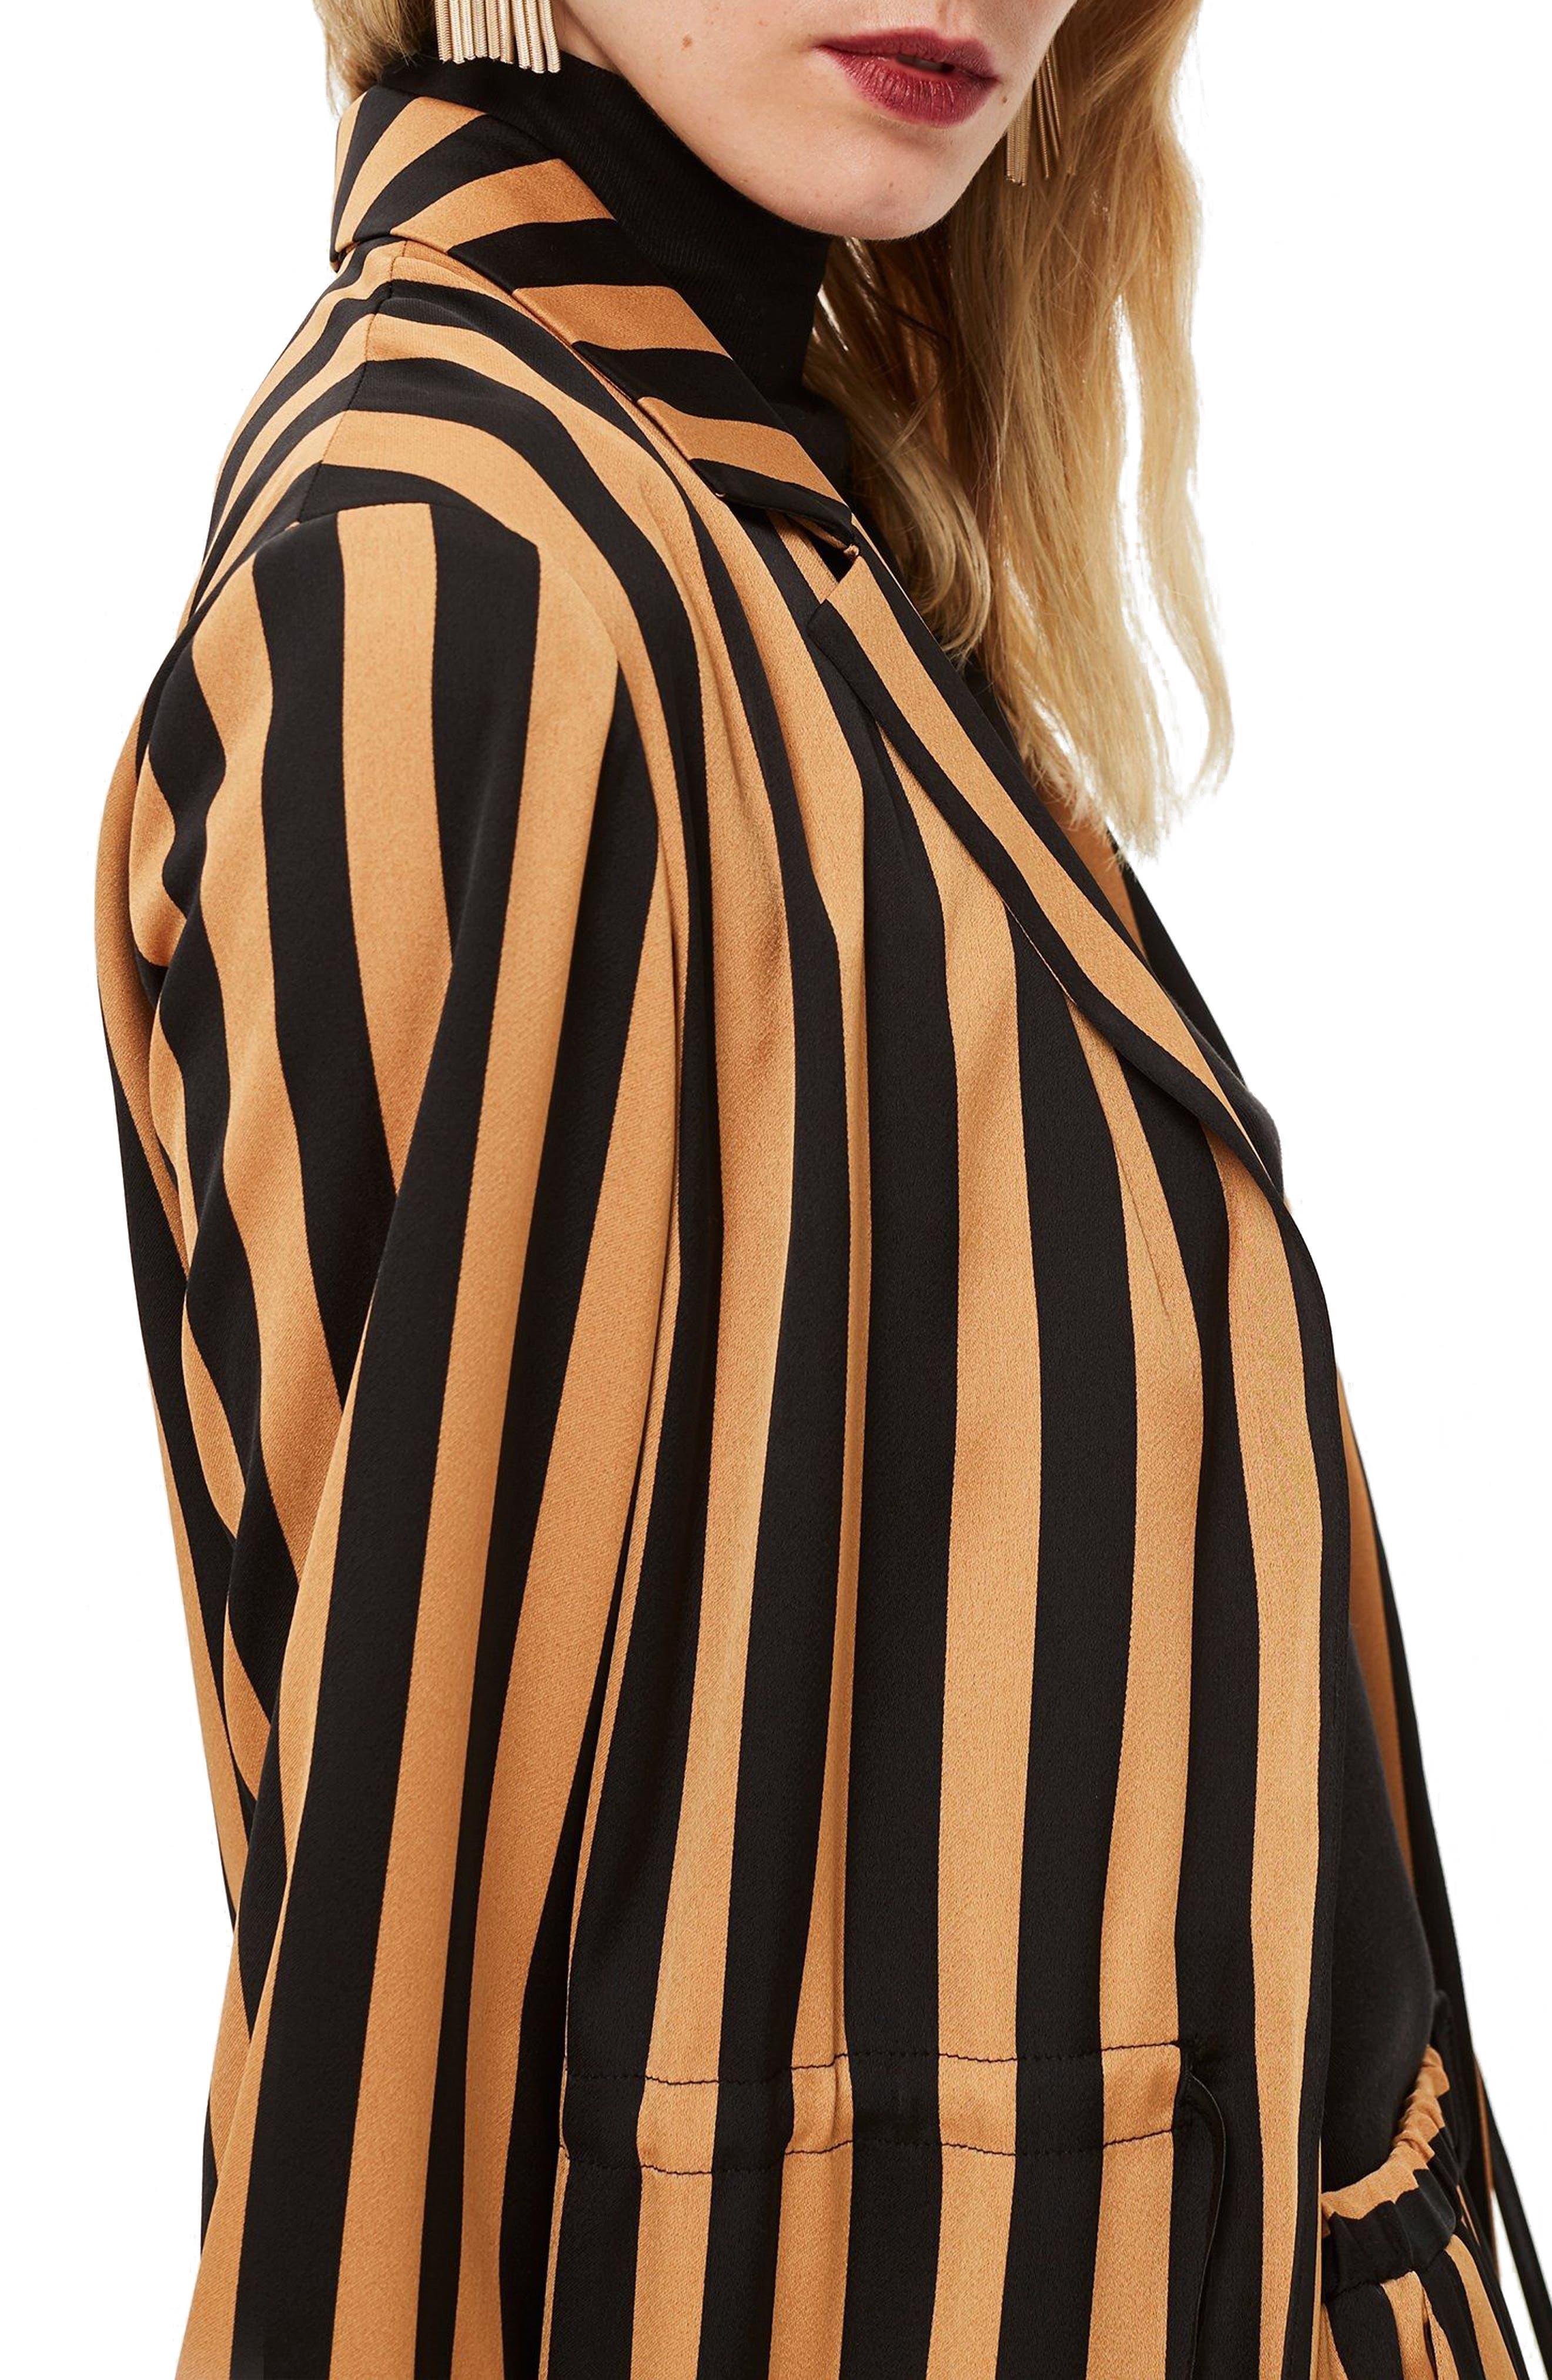 TOPSHOP,                             Stripe Duster Jacket,                             Alternate thumbnail 3, color,                             201